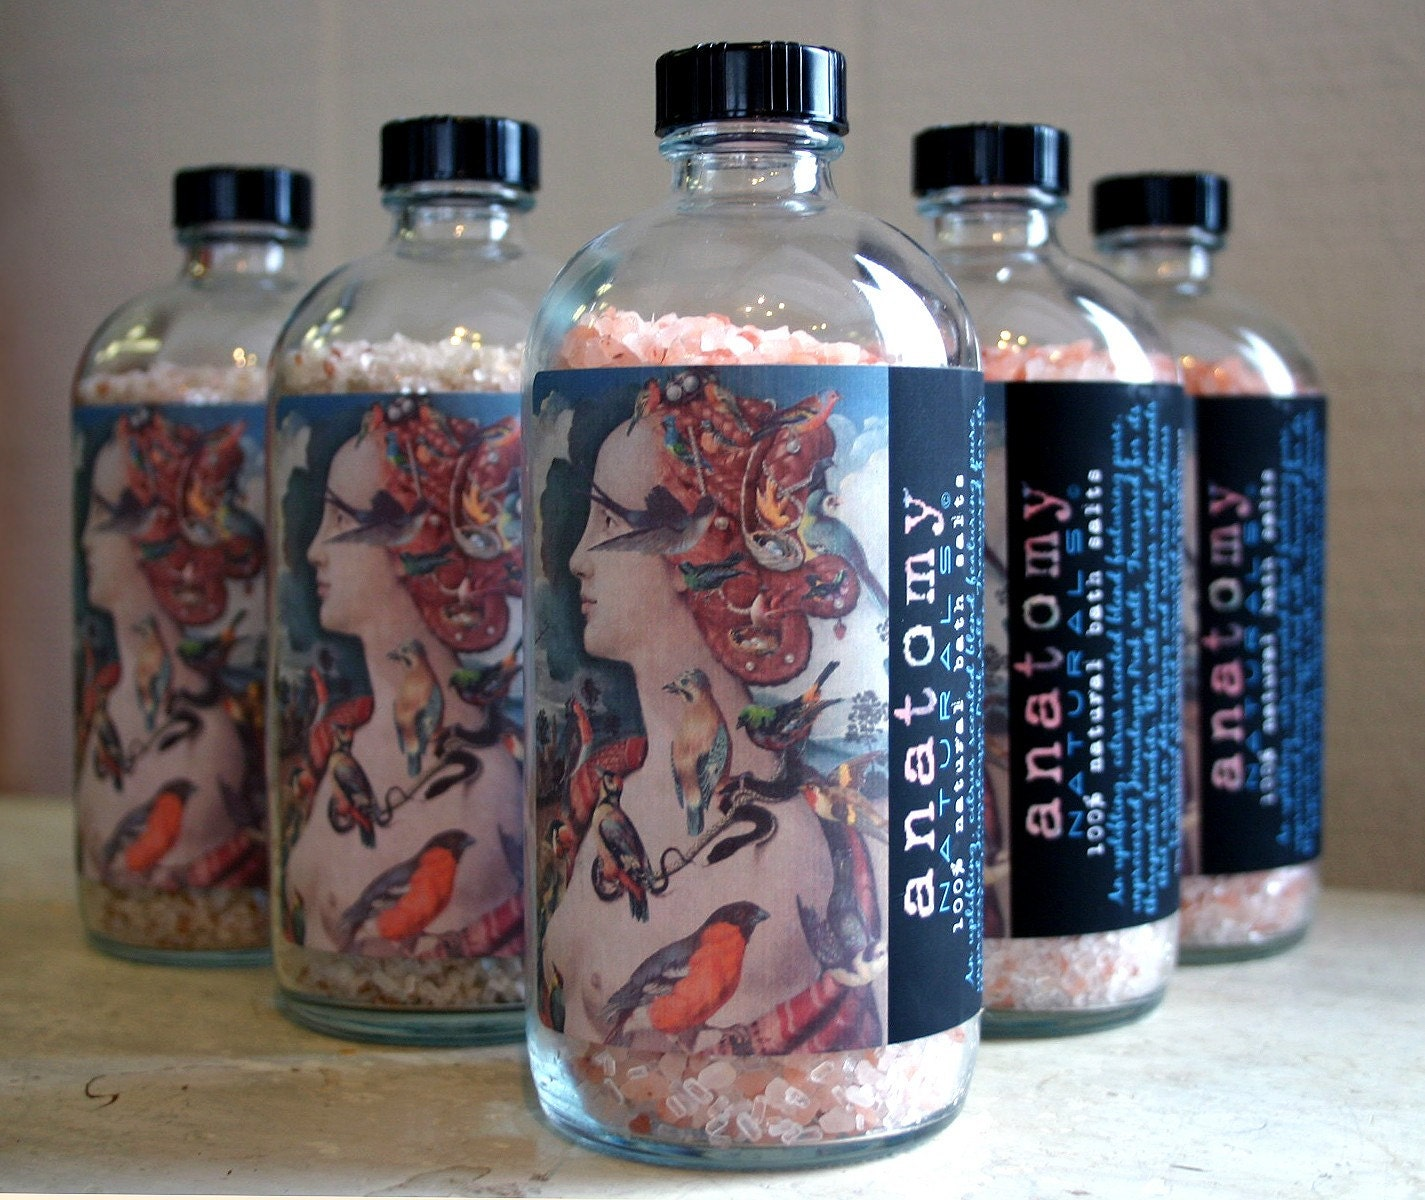 Natural pink bath salts soothing relaxing citrus scent with pretty art collage label